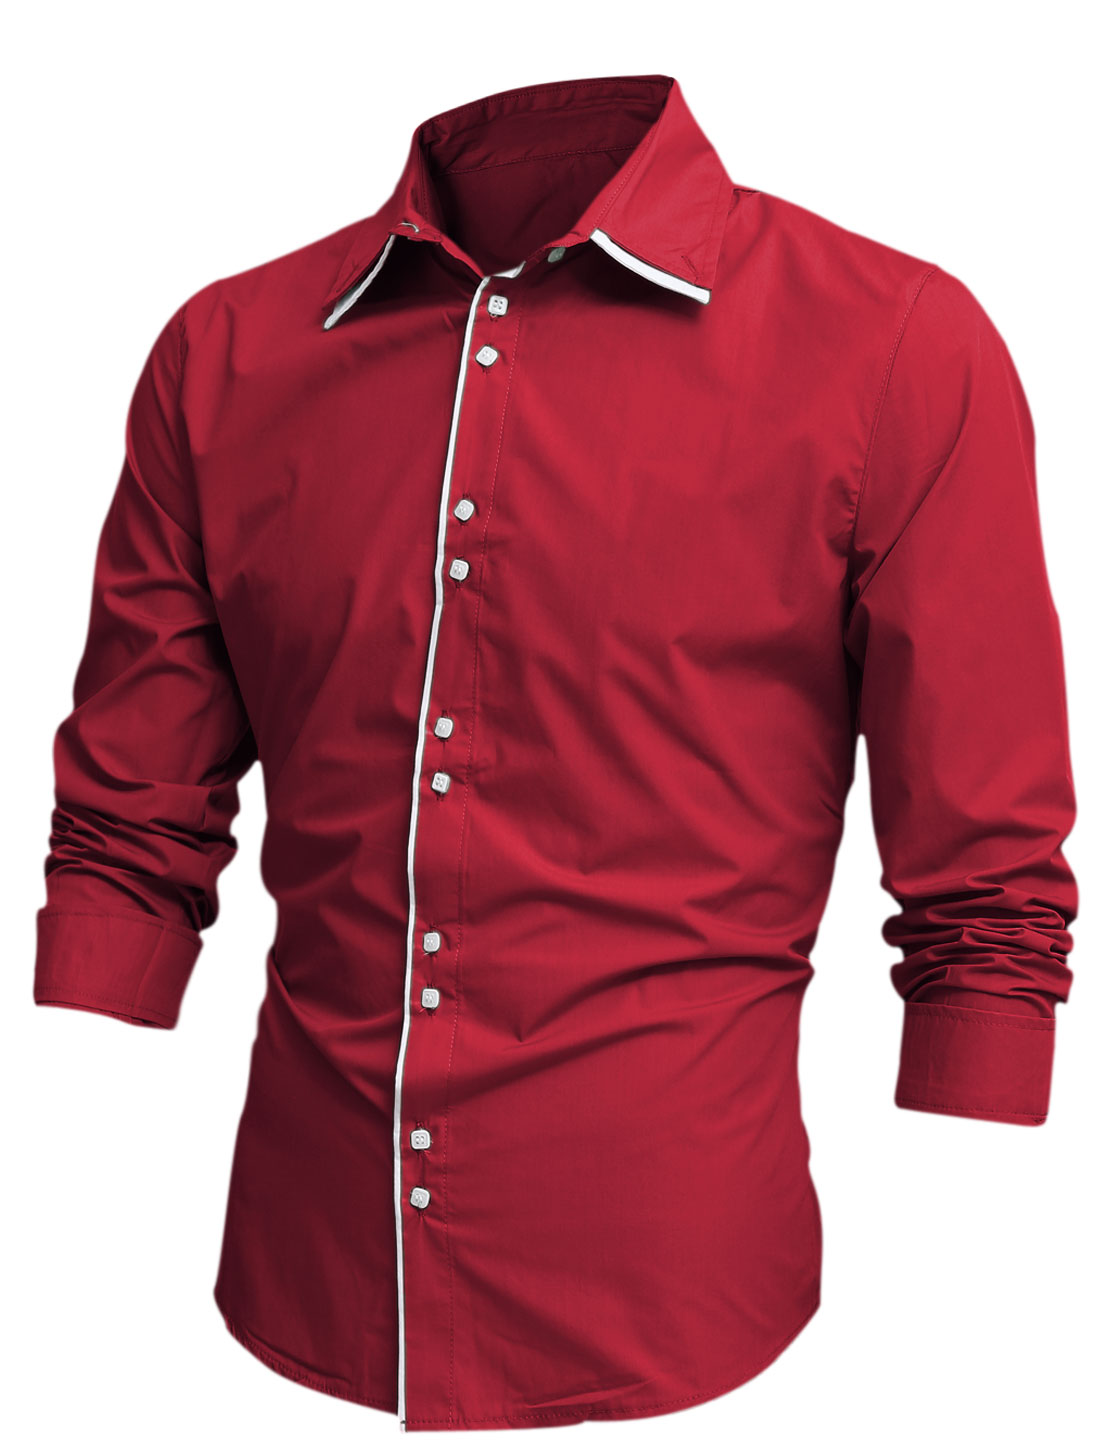 Men Tiered Point Collar Long Sleeve Button Up Shirt Red M